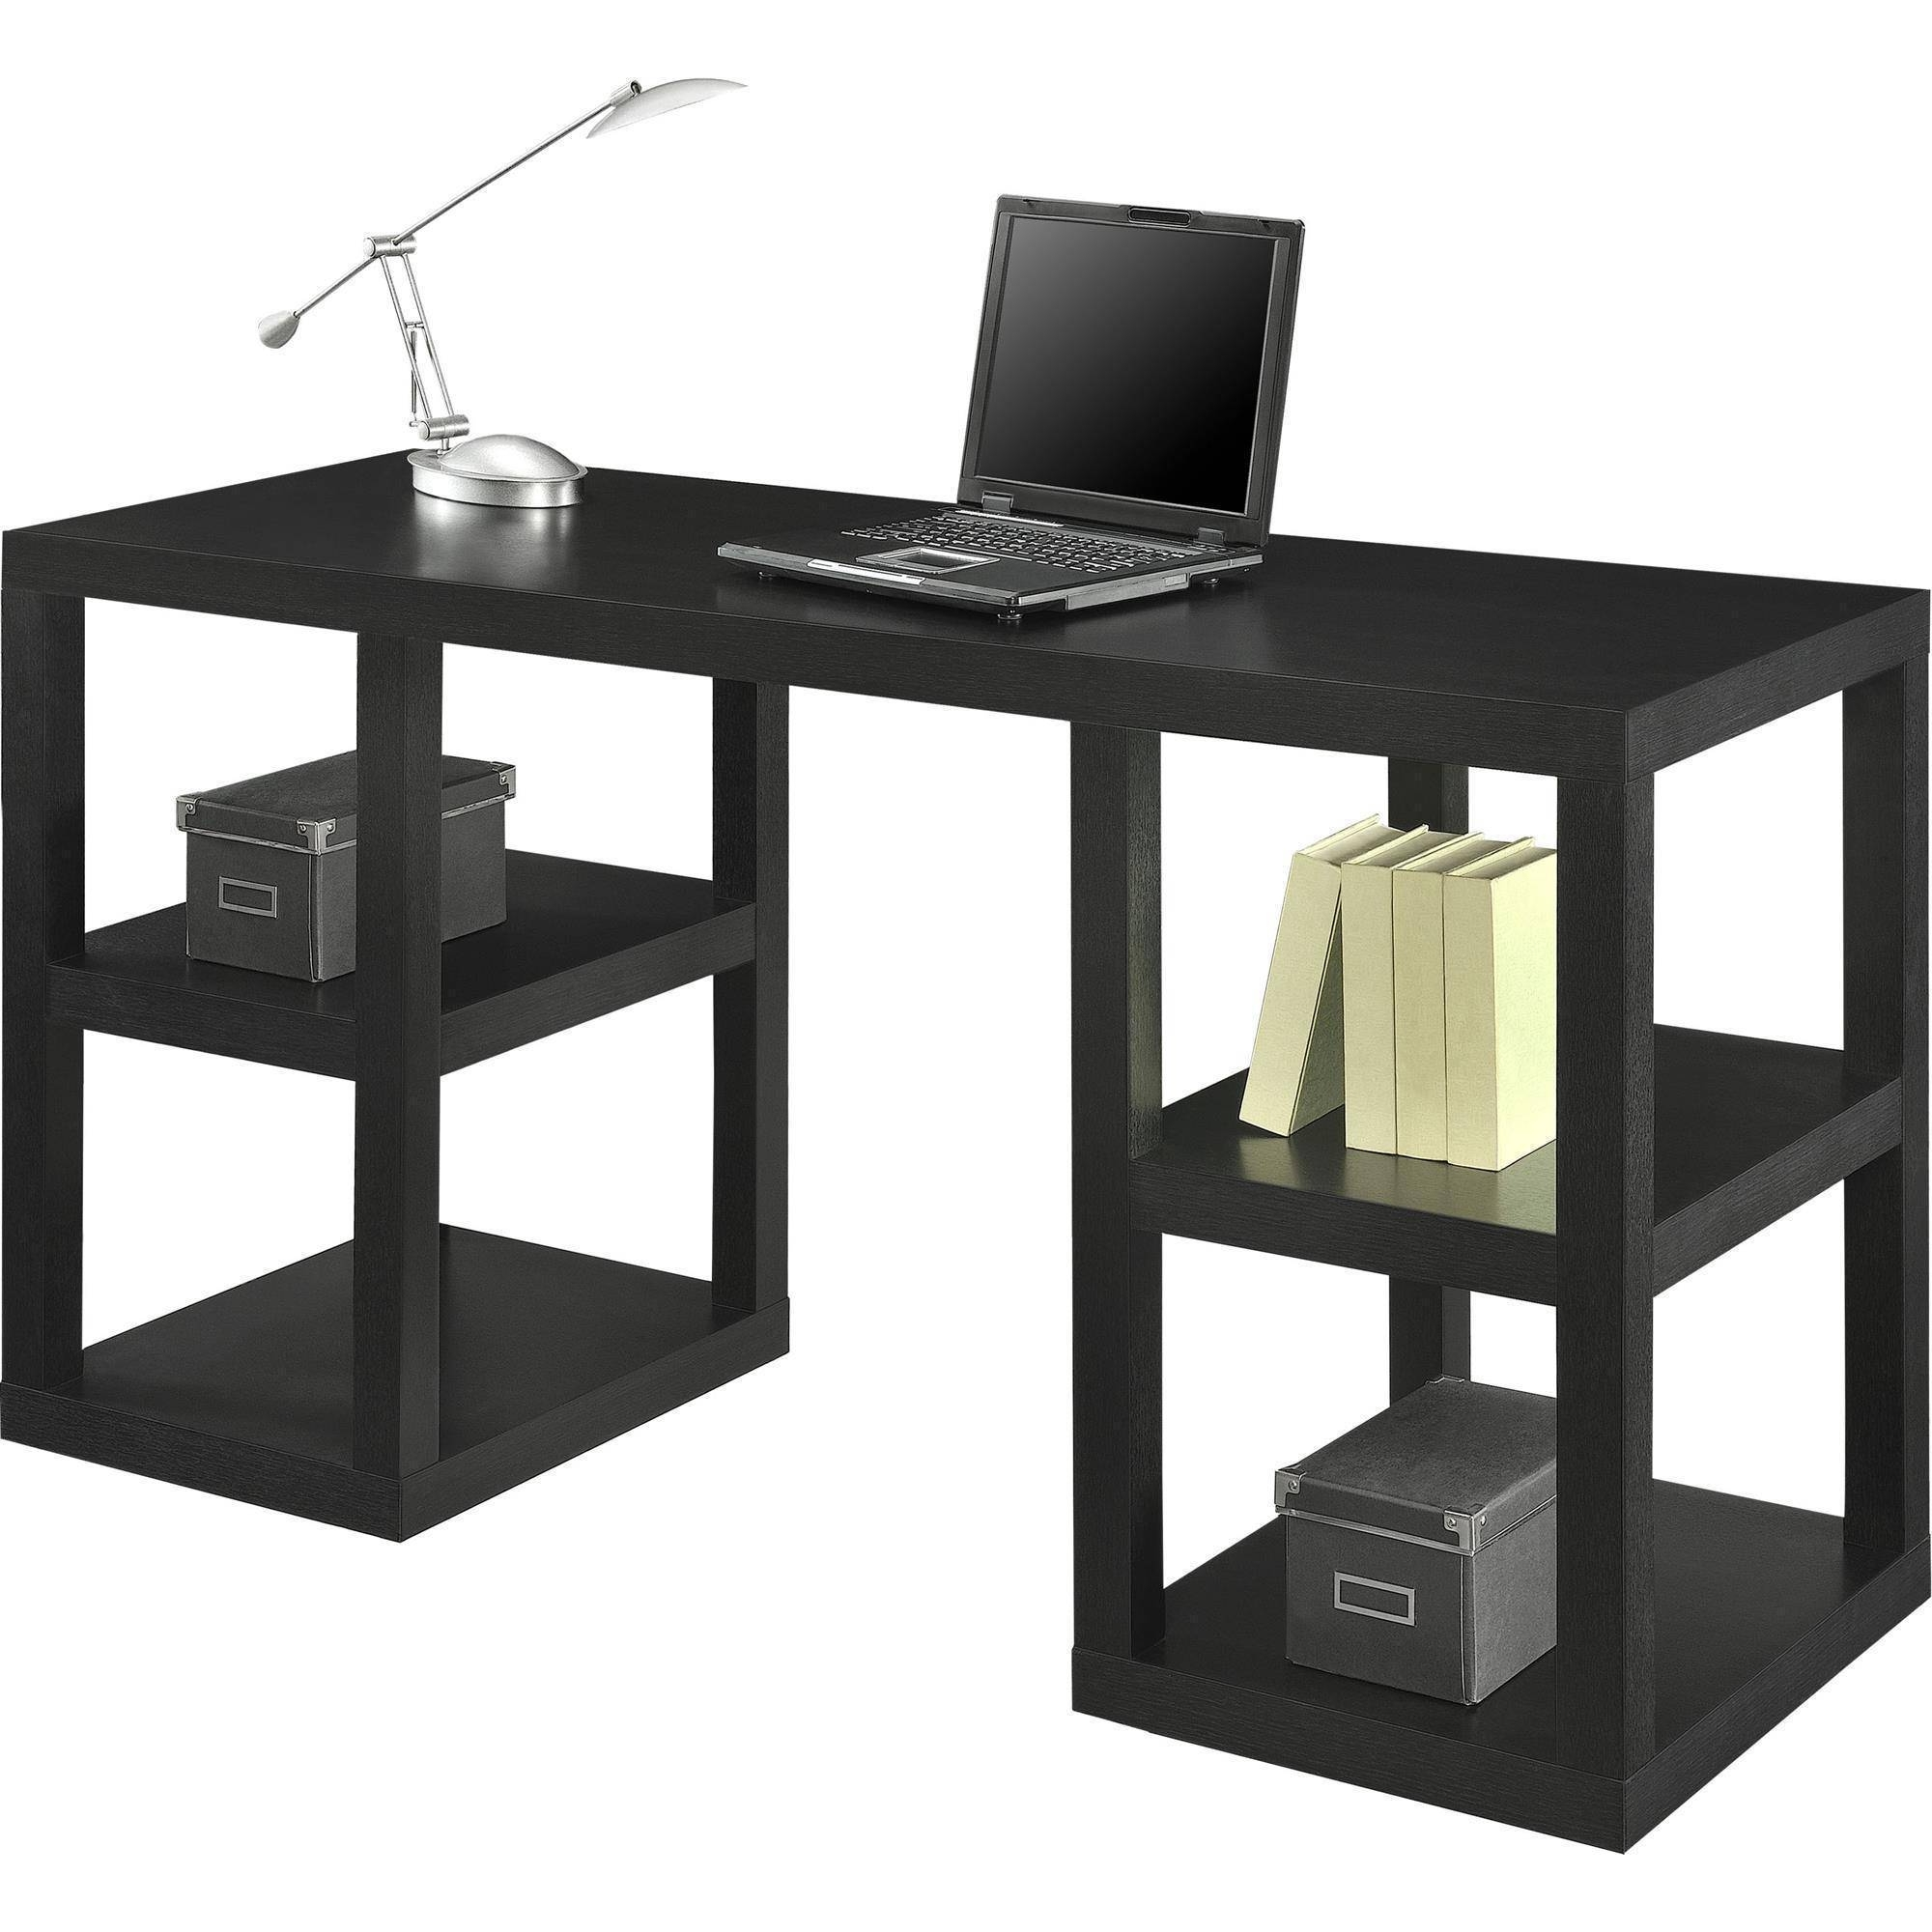 Most Recent Mainstays Double Pedestal Parsons Desk, Multiple Colors – Walmart For Computer Desks At Walmart (View 14 of 20)